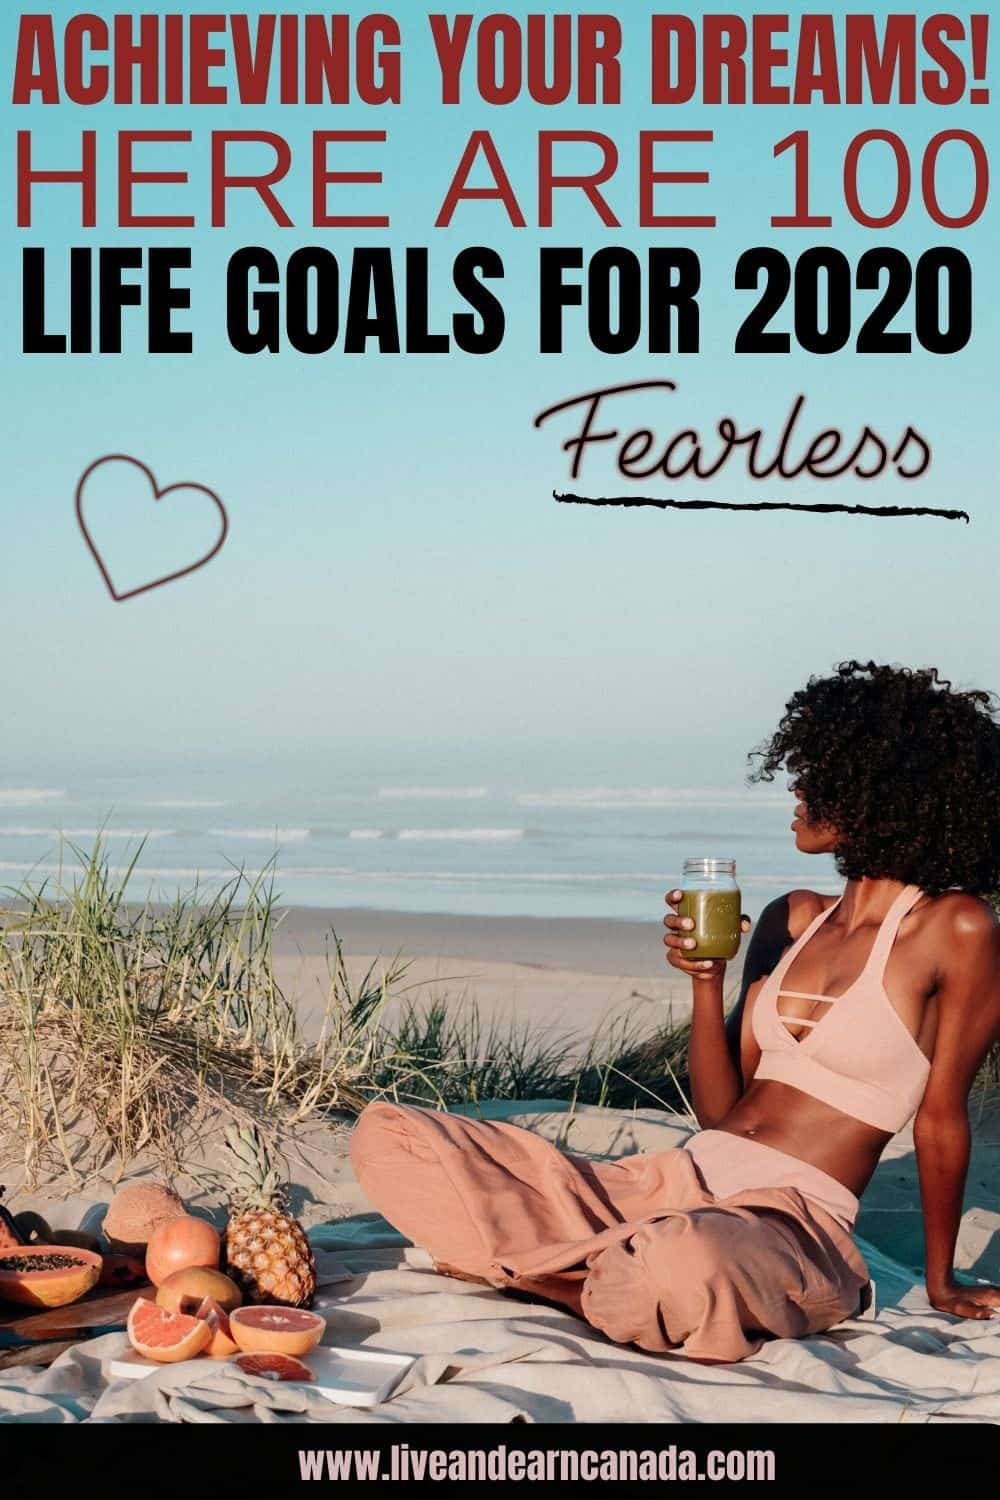 100 life goals and dreams-the ultimate list. Health/Fitness Goals. Financial Goals. Career/Professional Goals. Travel/Adventure Goals & more! Use this list of life goals to motivate yourself toward accomplishing your personal best. #100goals #lifegoals